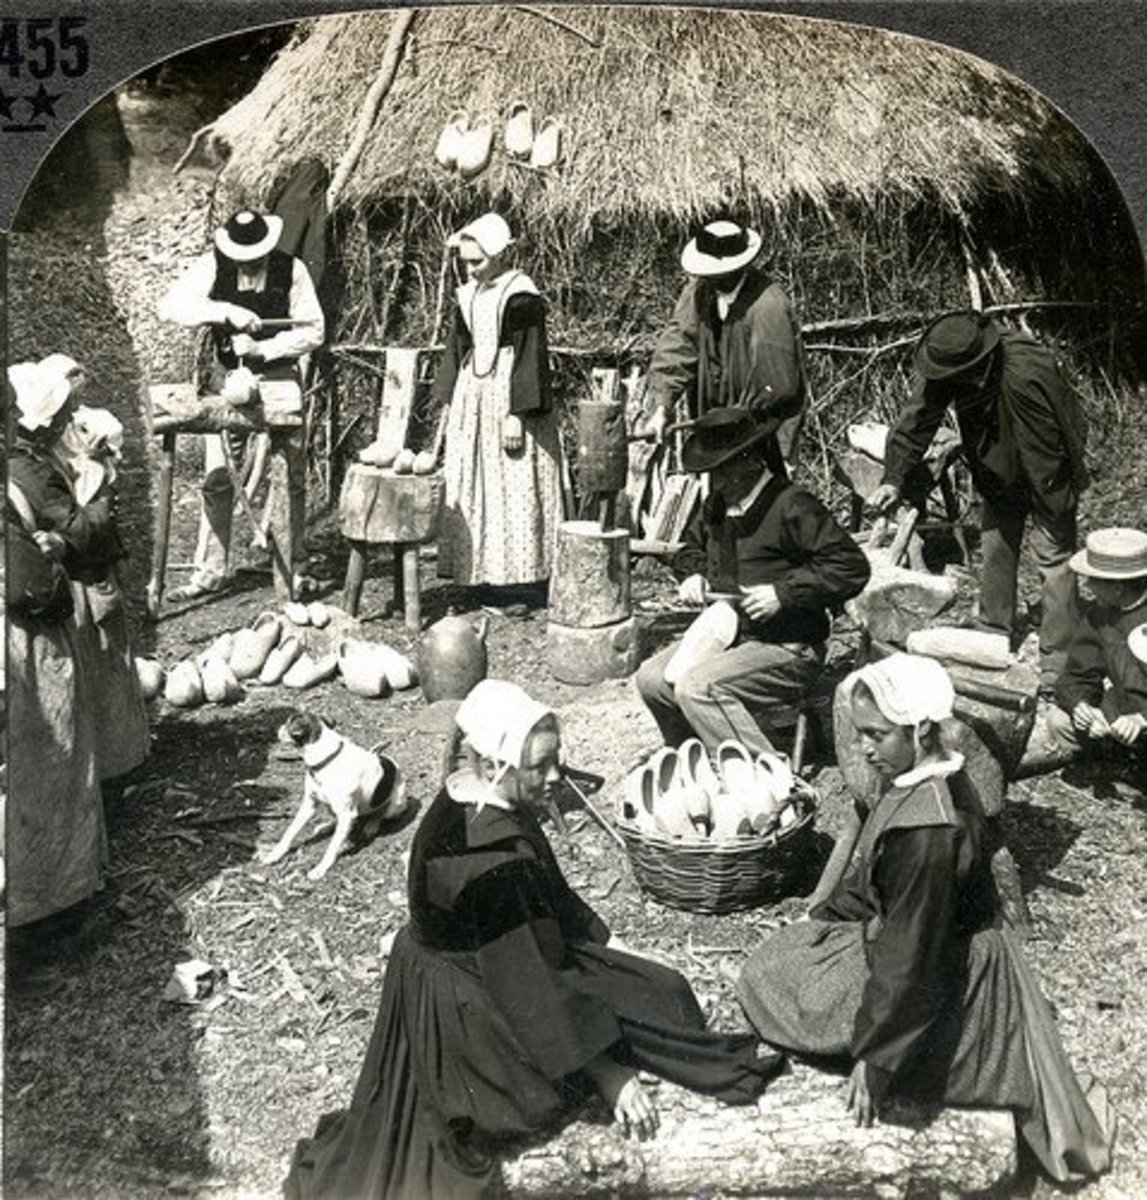 Breton peasants making sabots or wooden shoes.